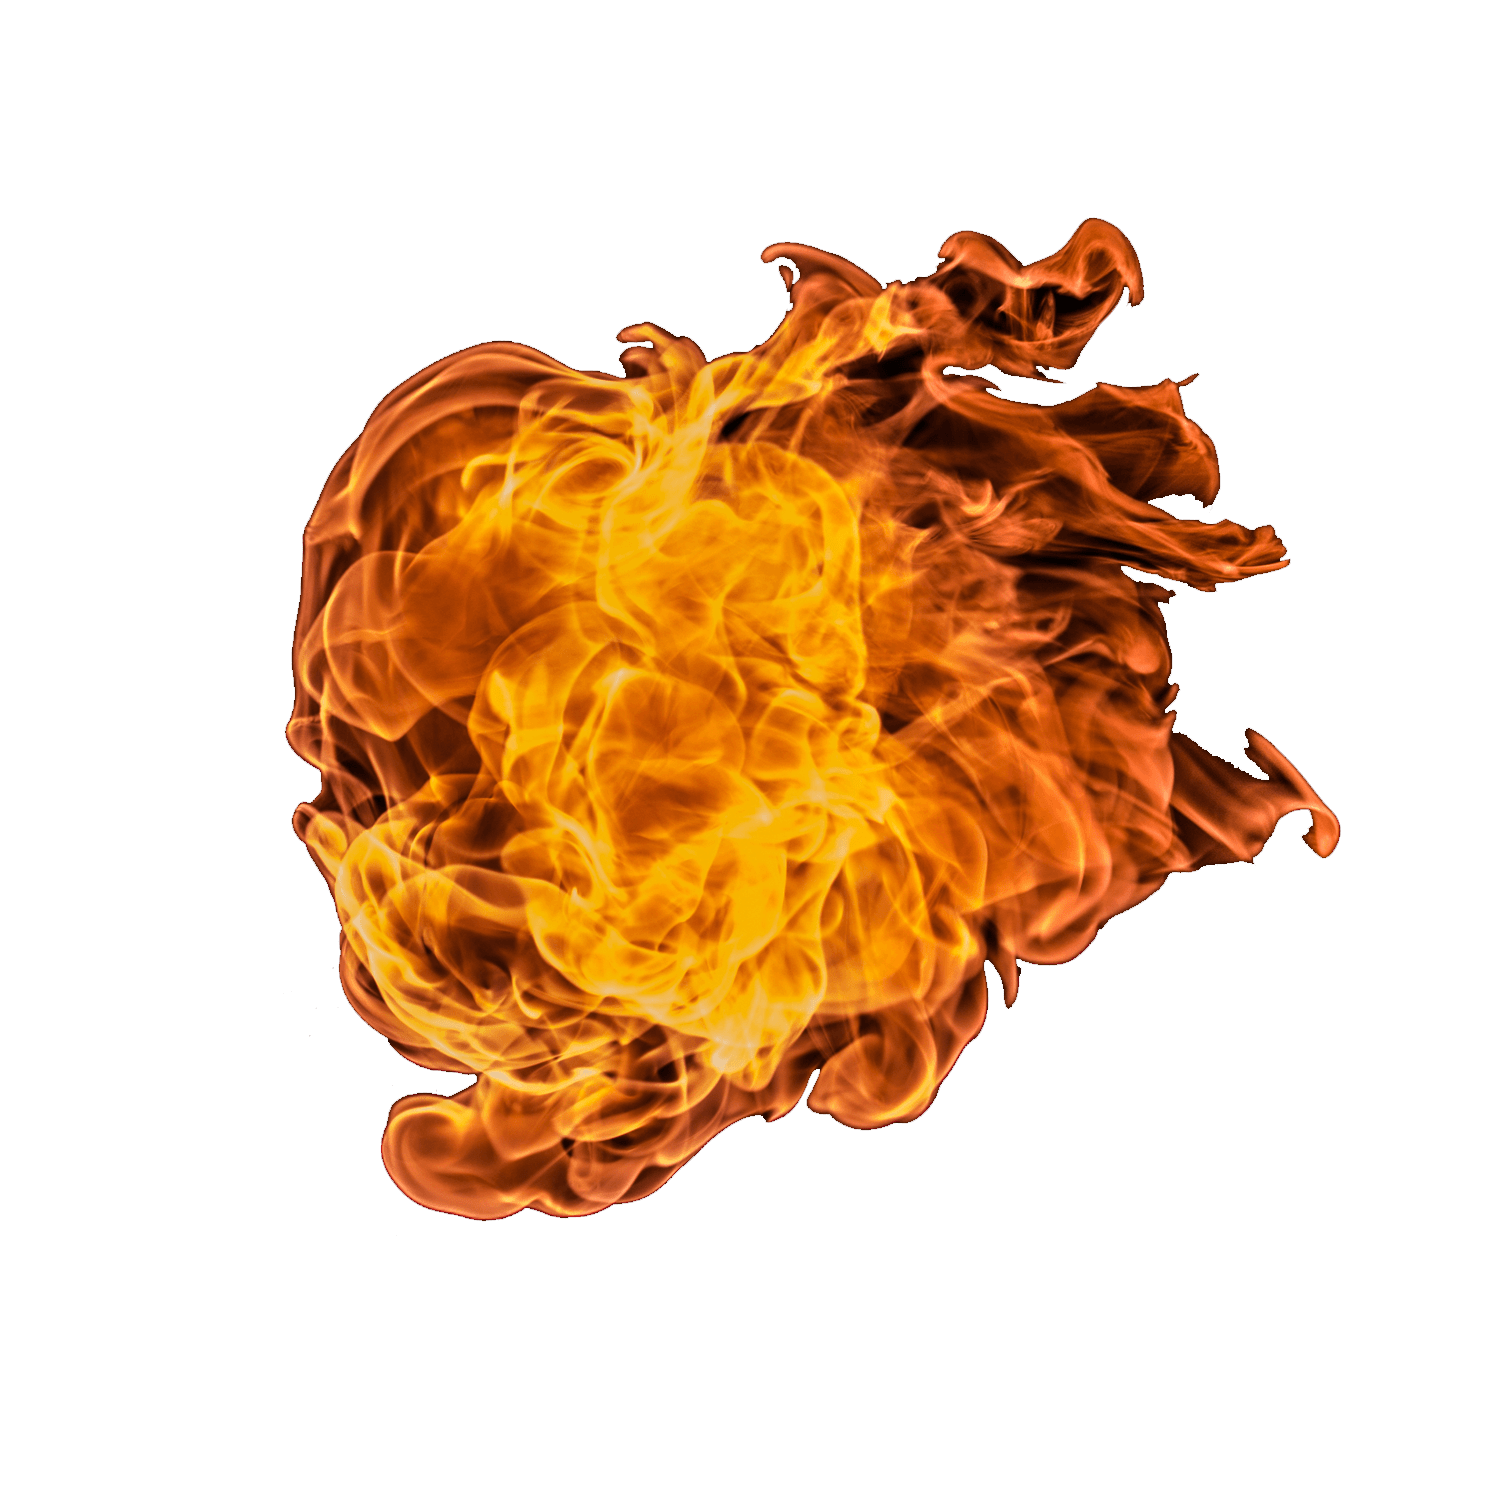 Flames clipart file. Download fireball hq png